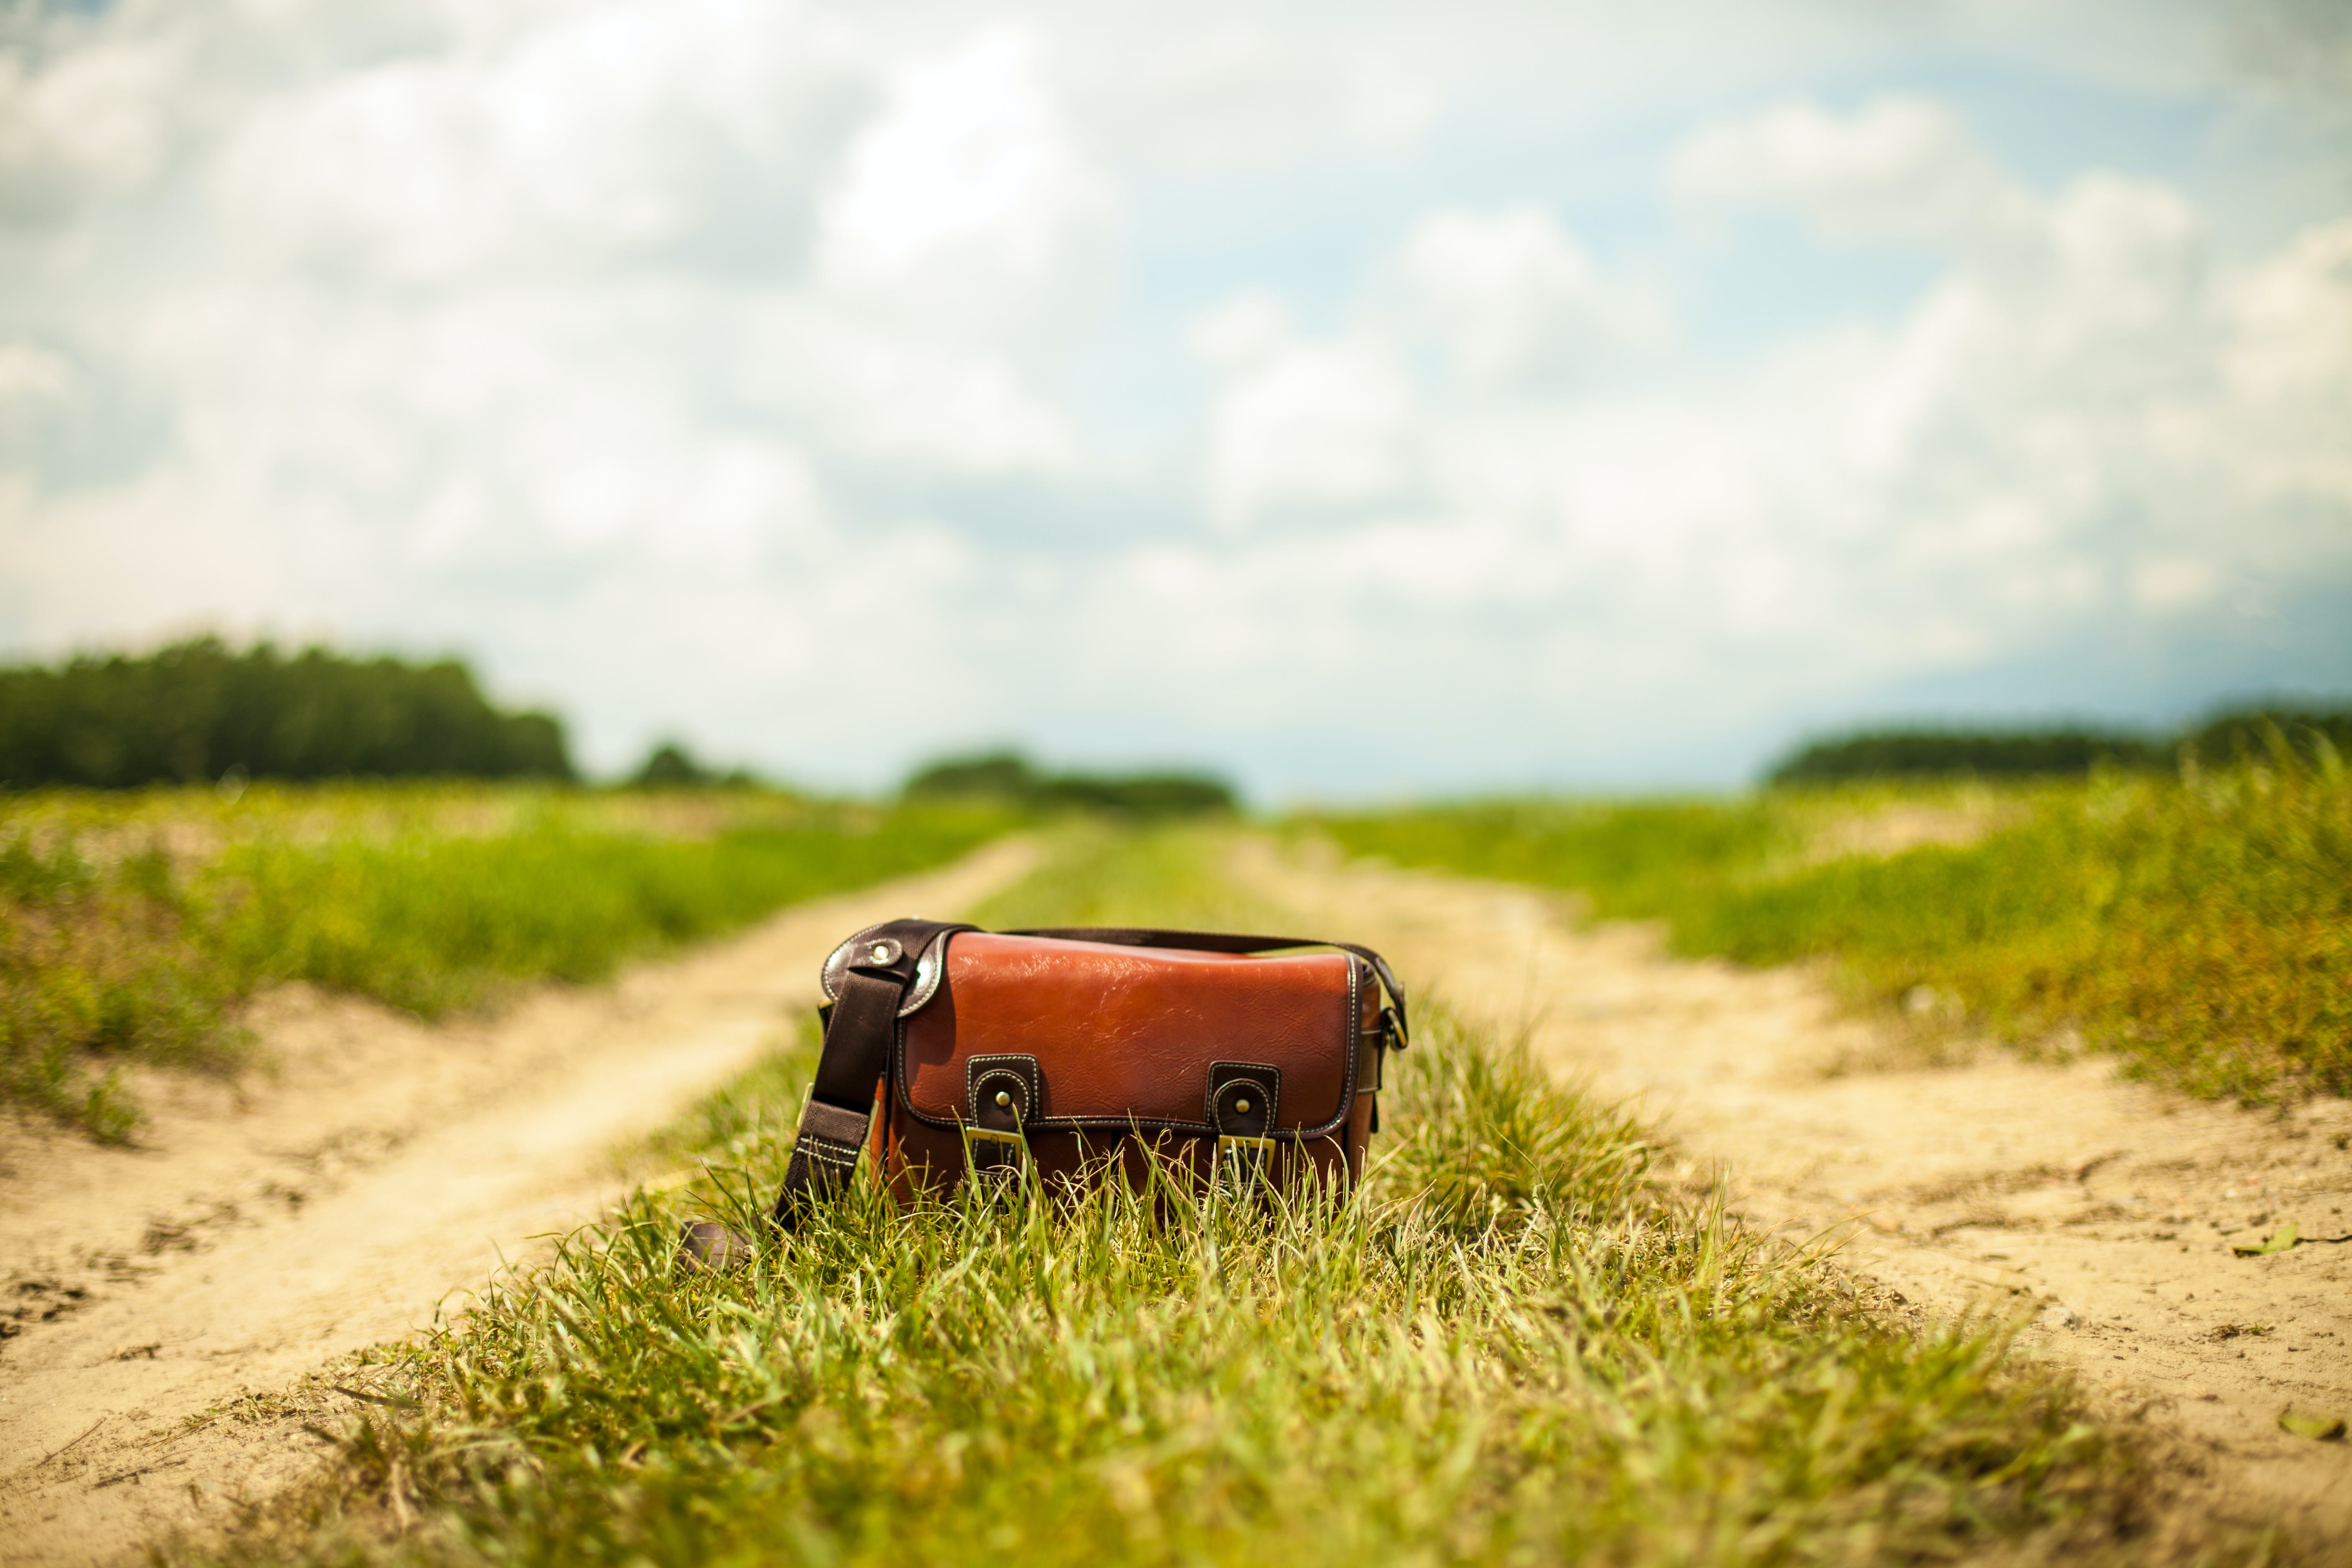 Brown Leather Baguette Bag on Green Grass Field With Vehicle Track